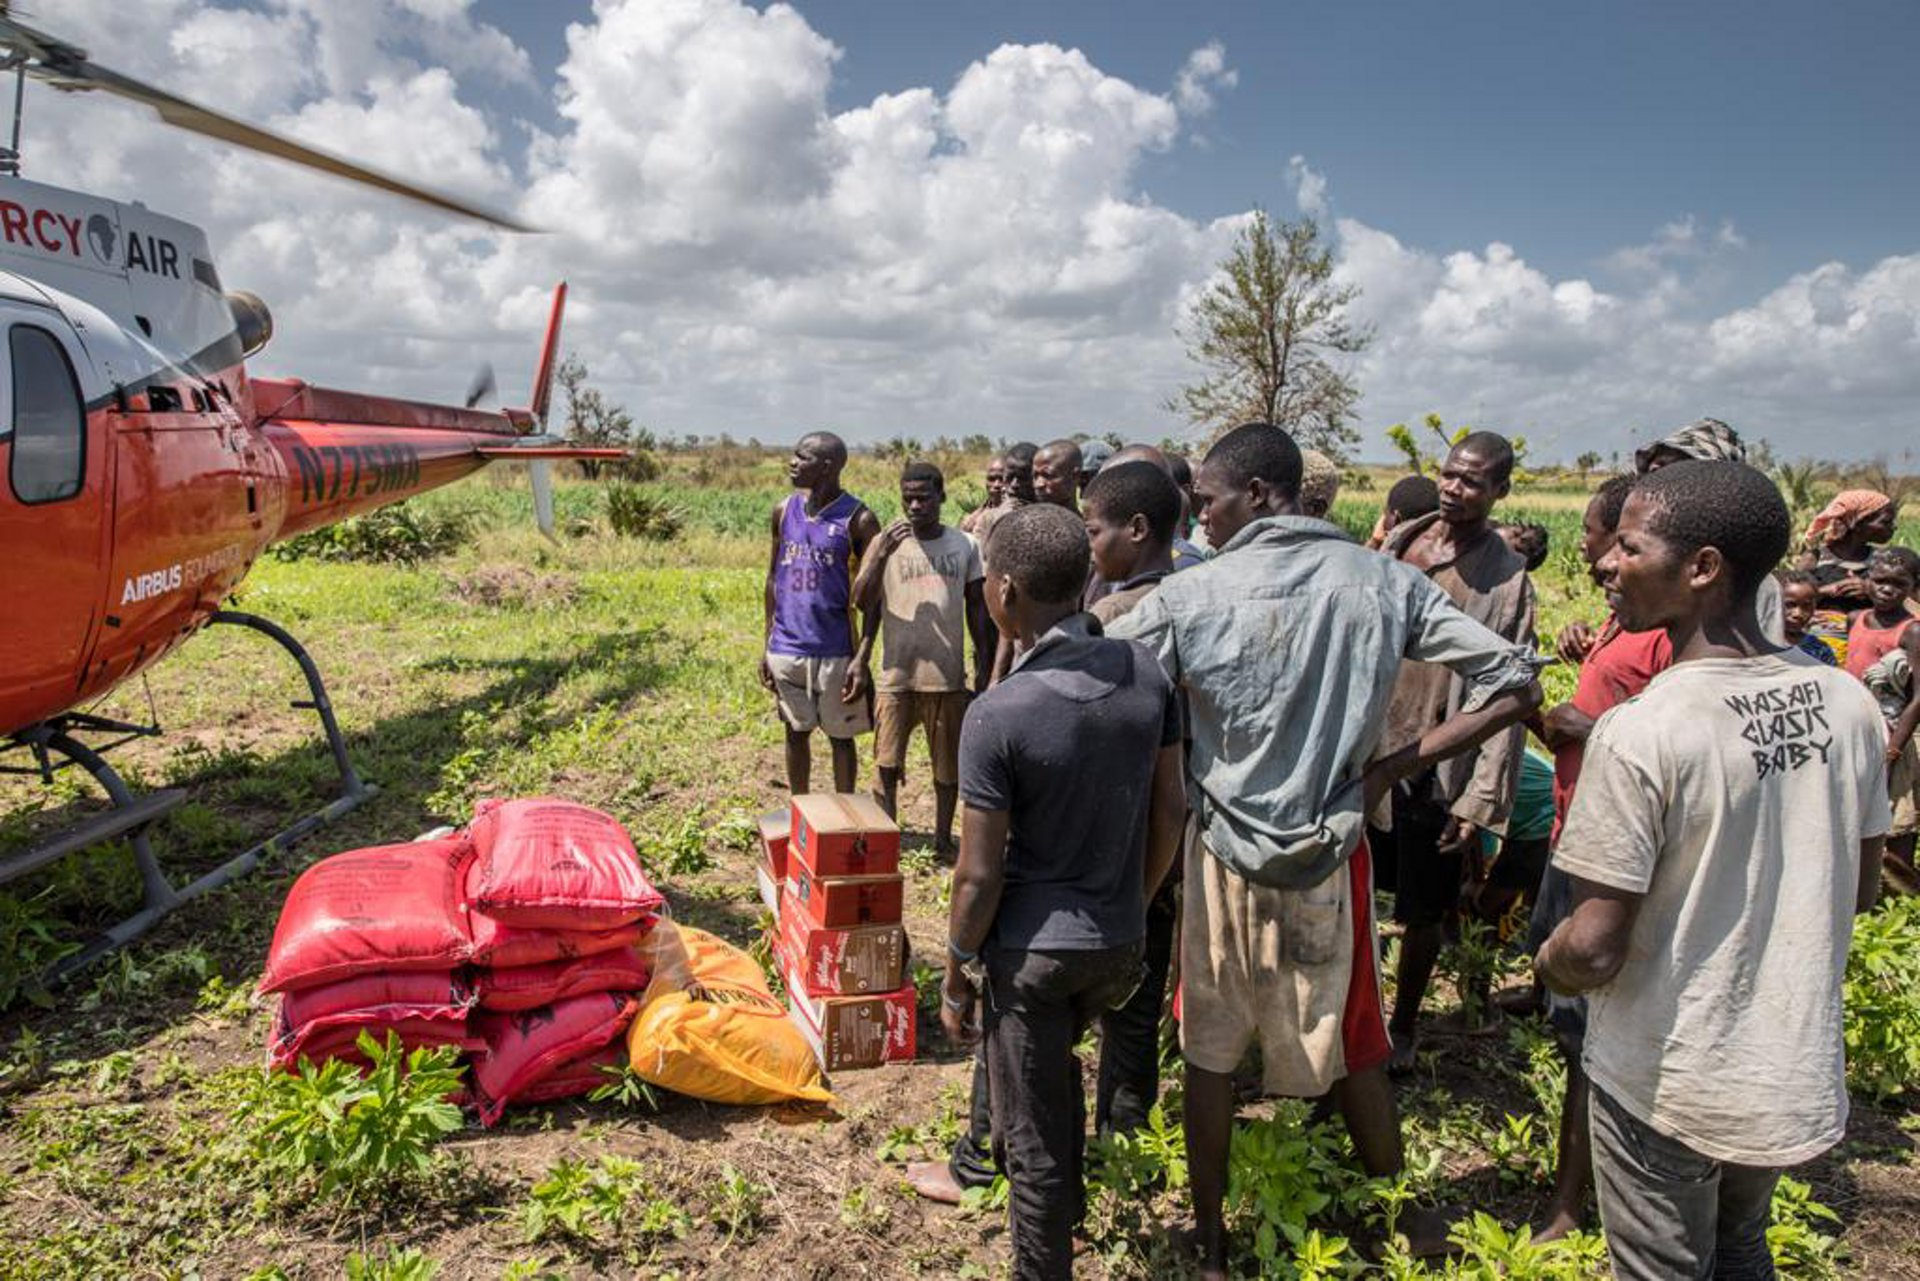 Helicopters are essential in the first phases of a crisis